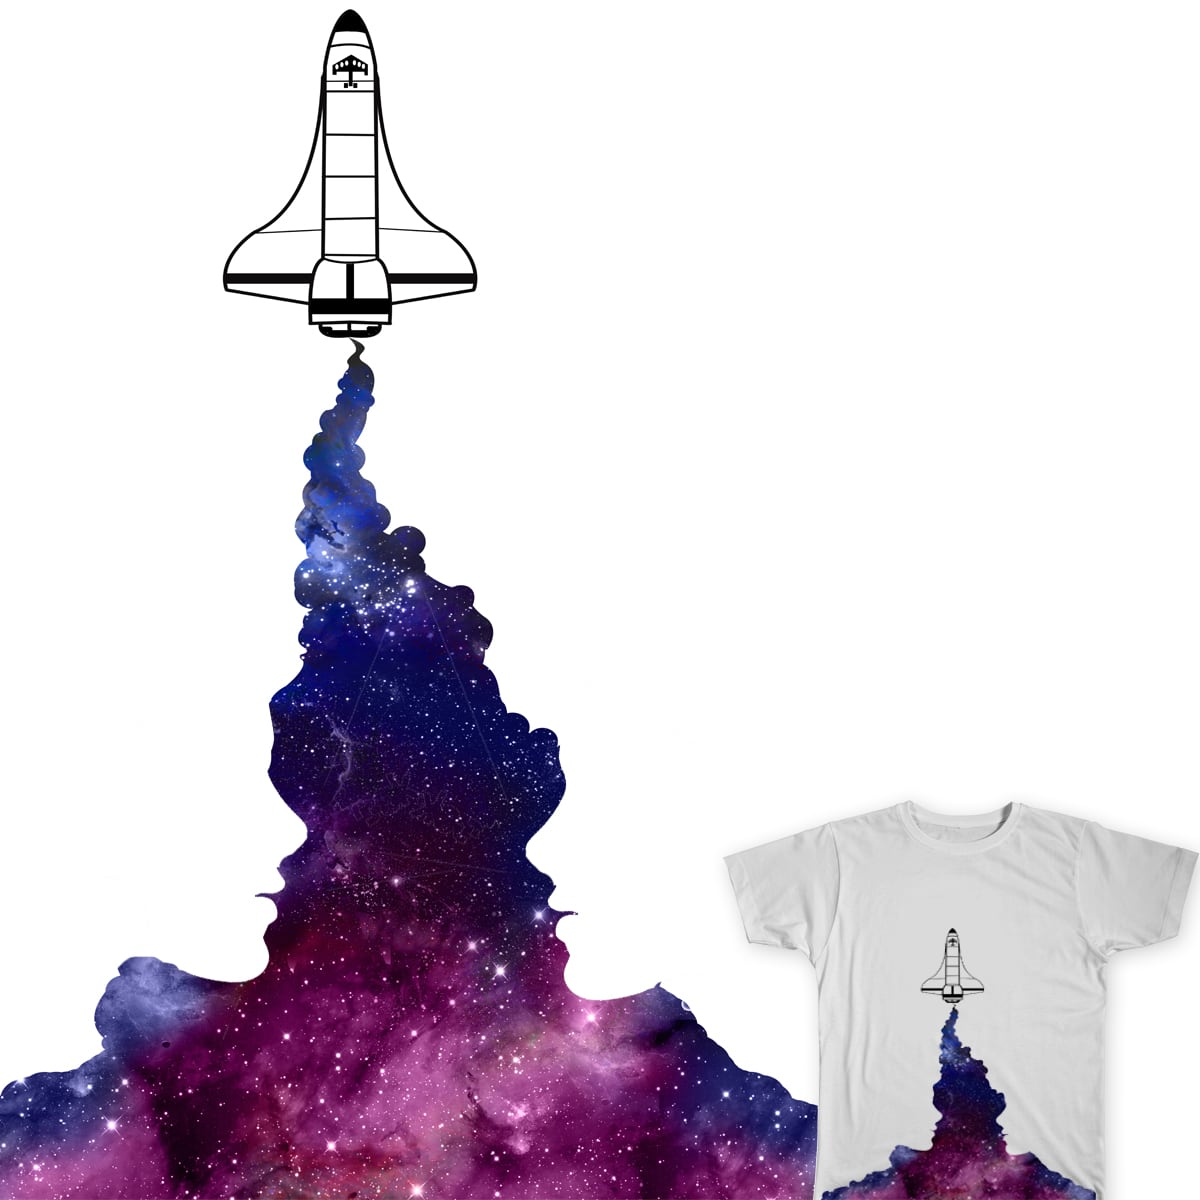 Negative Space by Kre8ive1 on Threadless